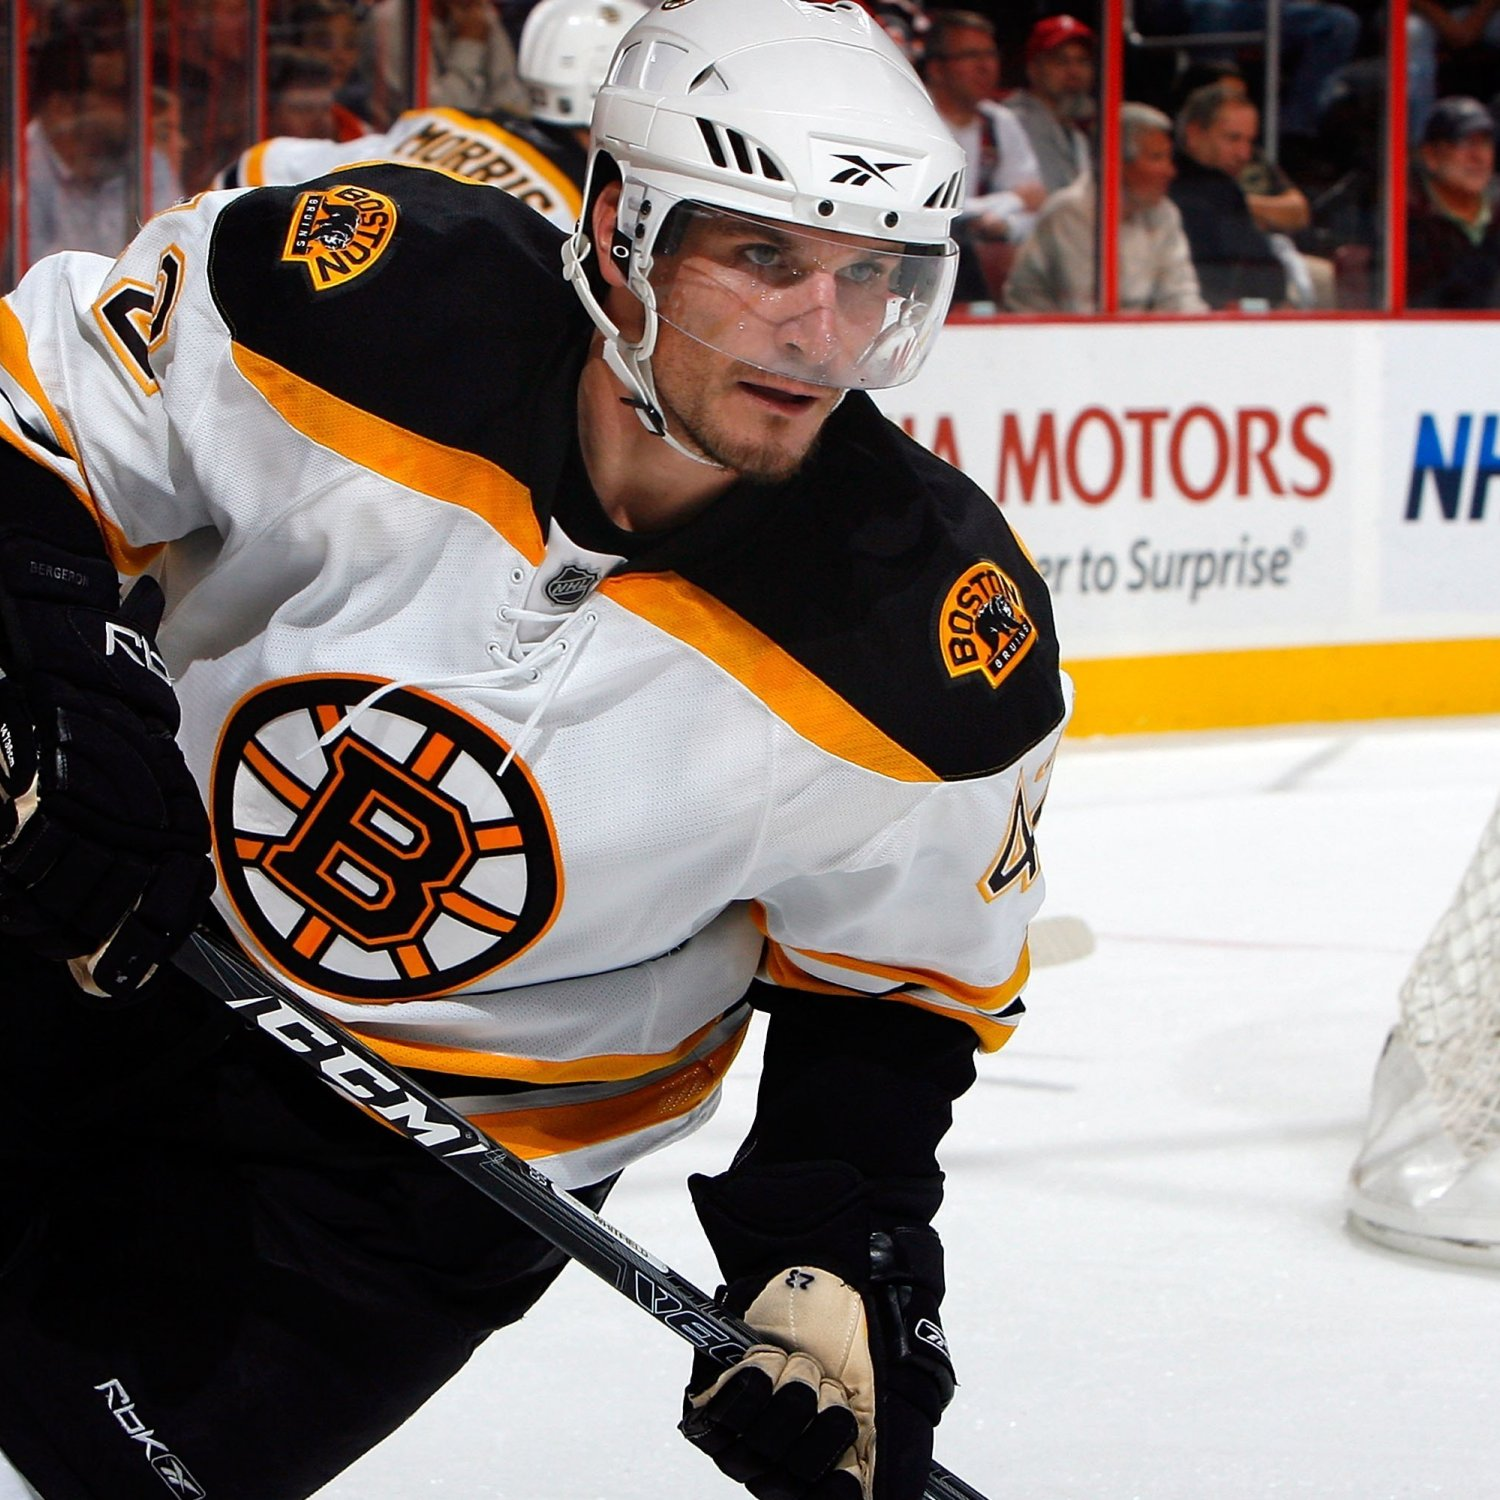 Boston Bruins: Will The 2012-13 Season Be Trent Whitfield